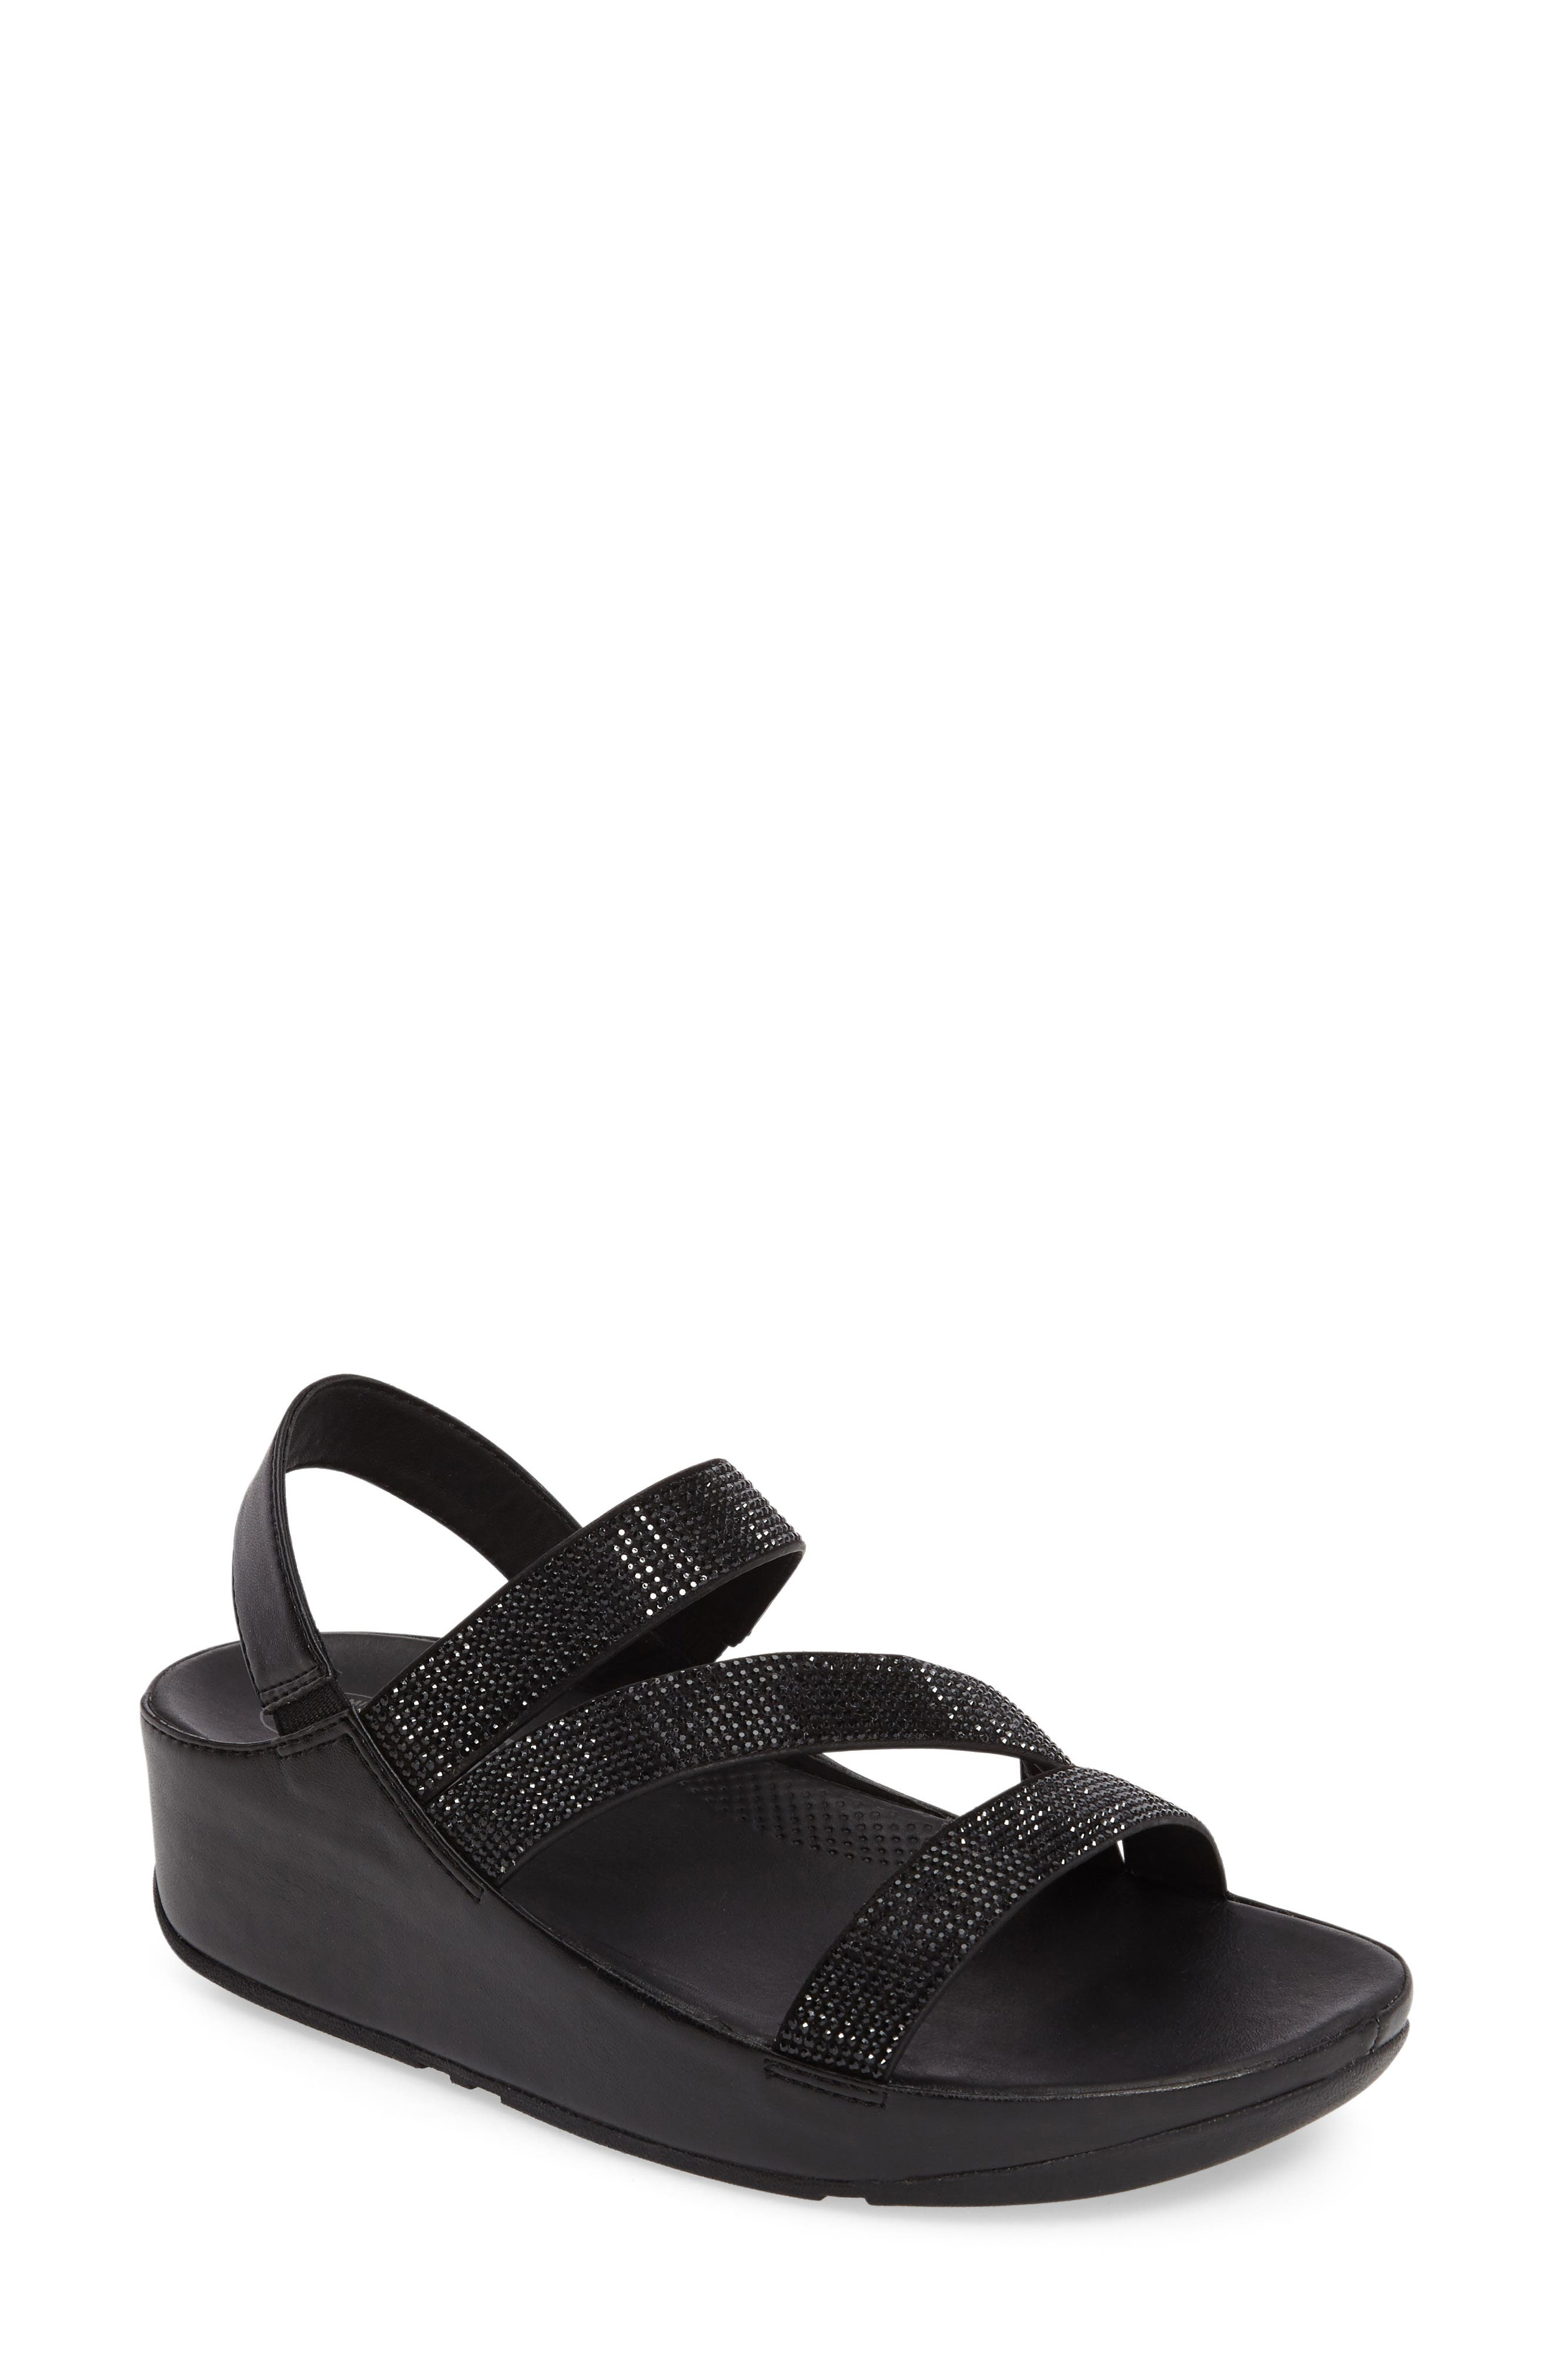 FITFLOP,                              Crystall Wedge Sandal,                             Main thumbnail 1, color,                             001